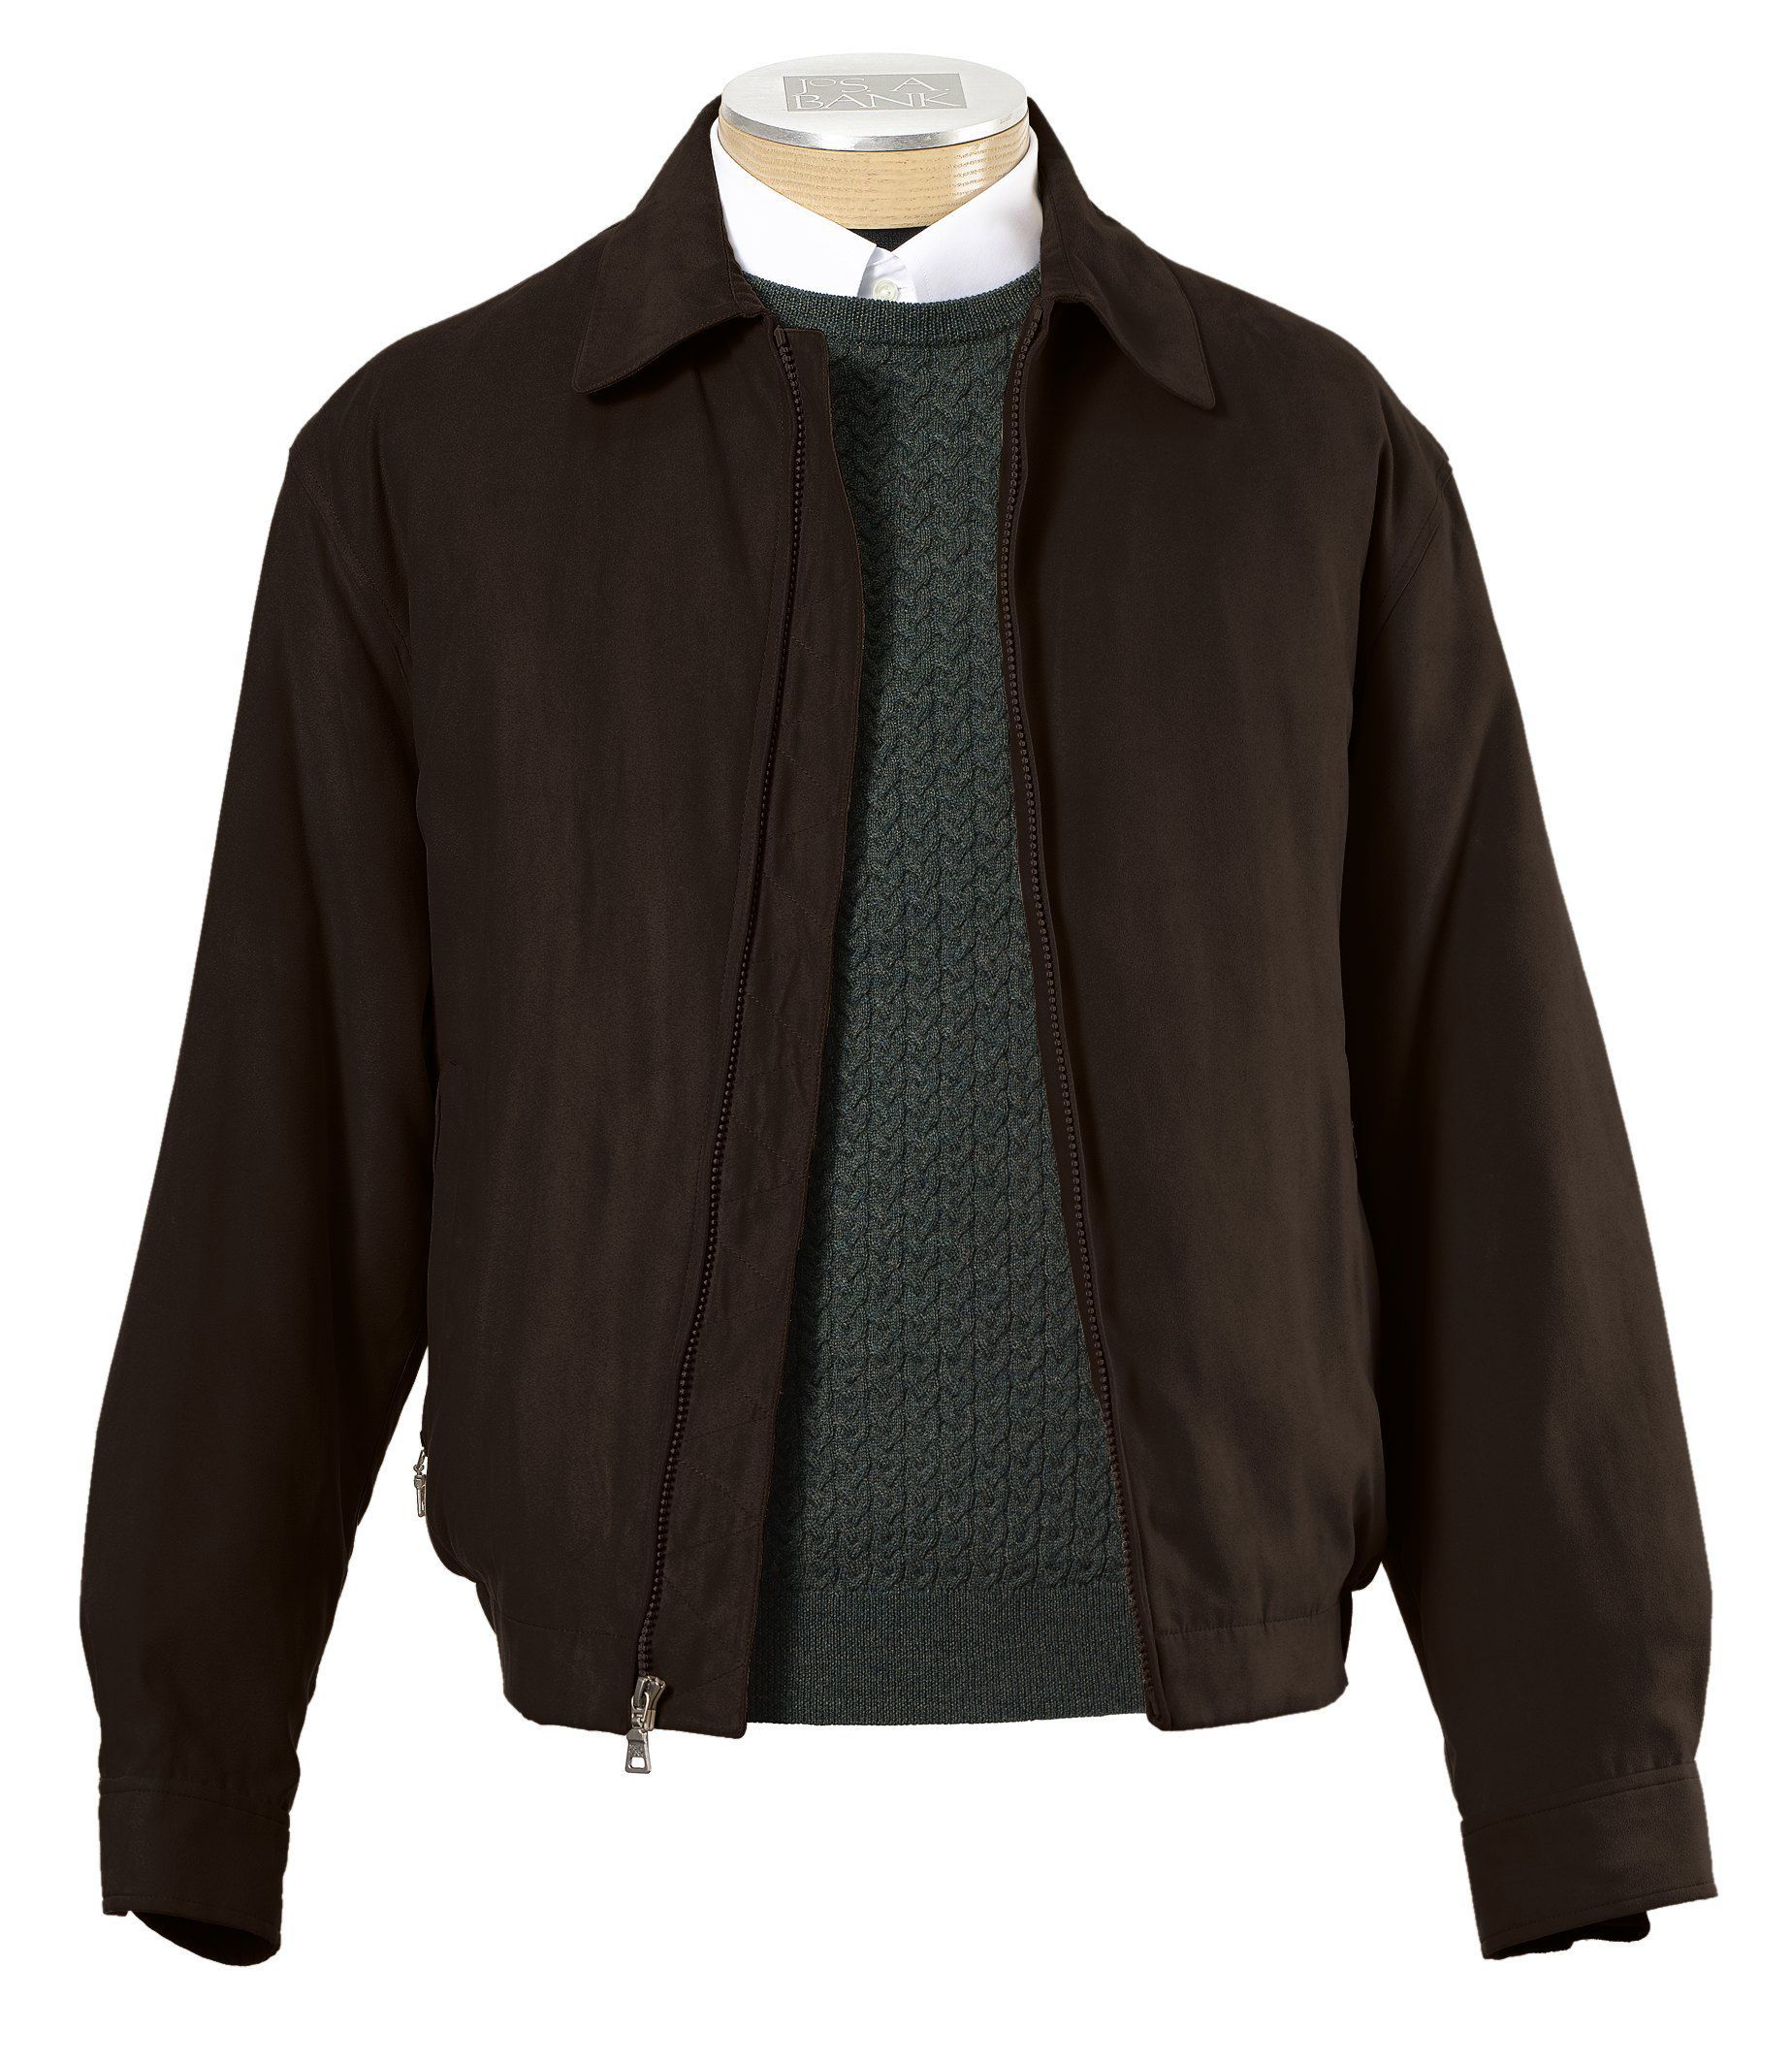 Micro-Suede Zip-Out Bomber Jacket Big and Tall